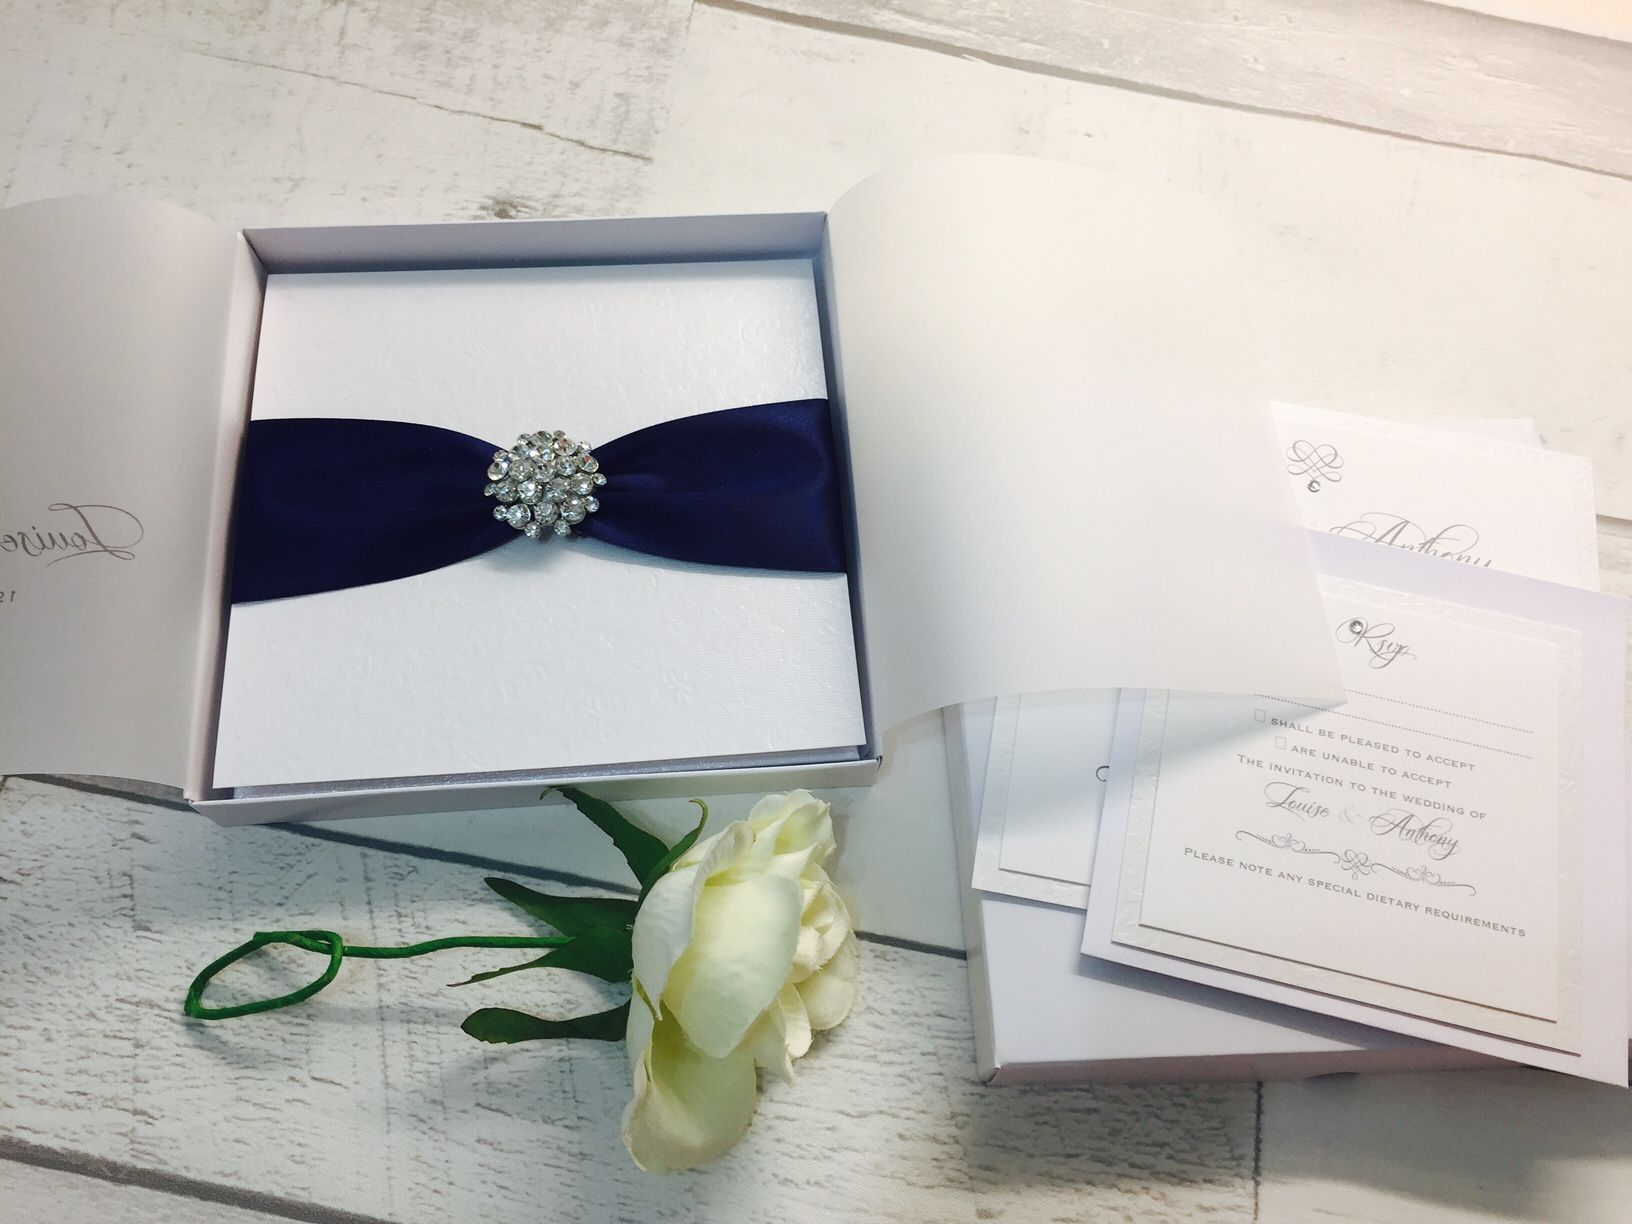 Luxury boxed wedding invitation with luxury crystal brooch